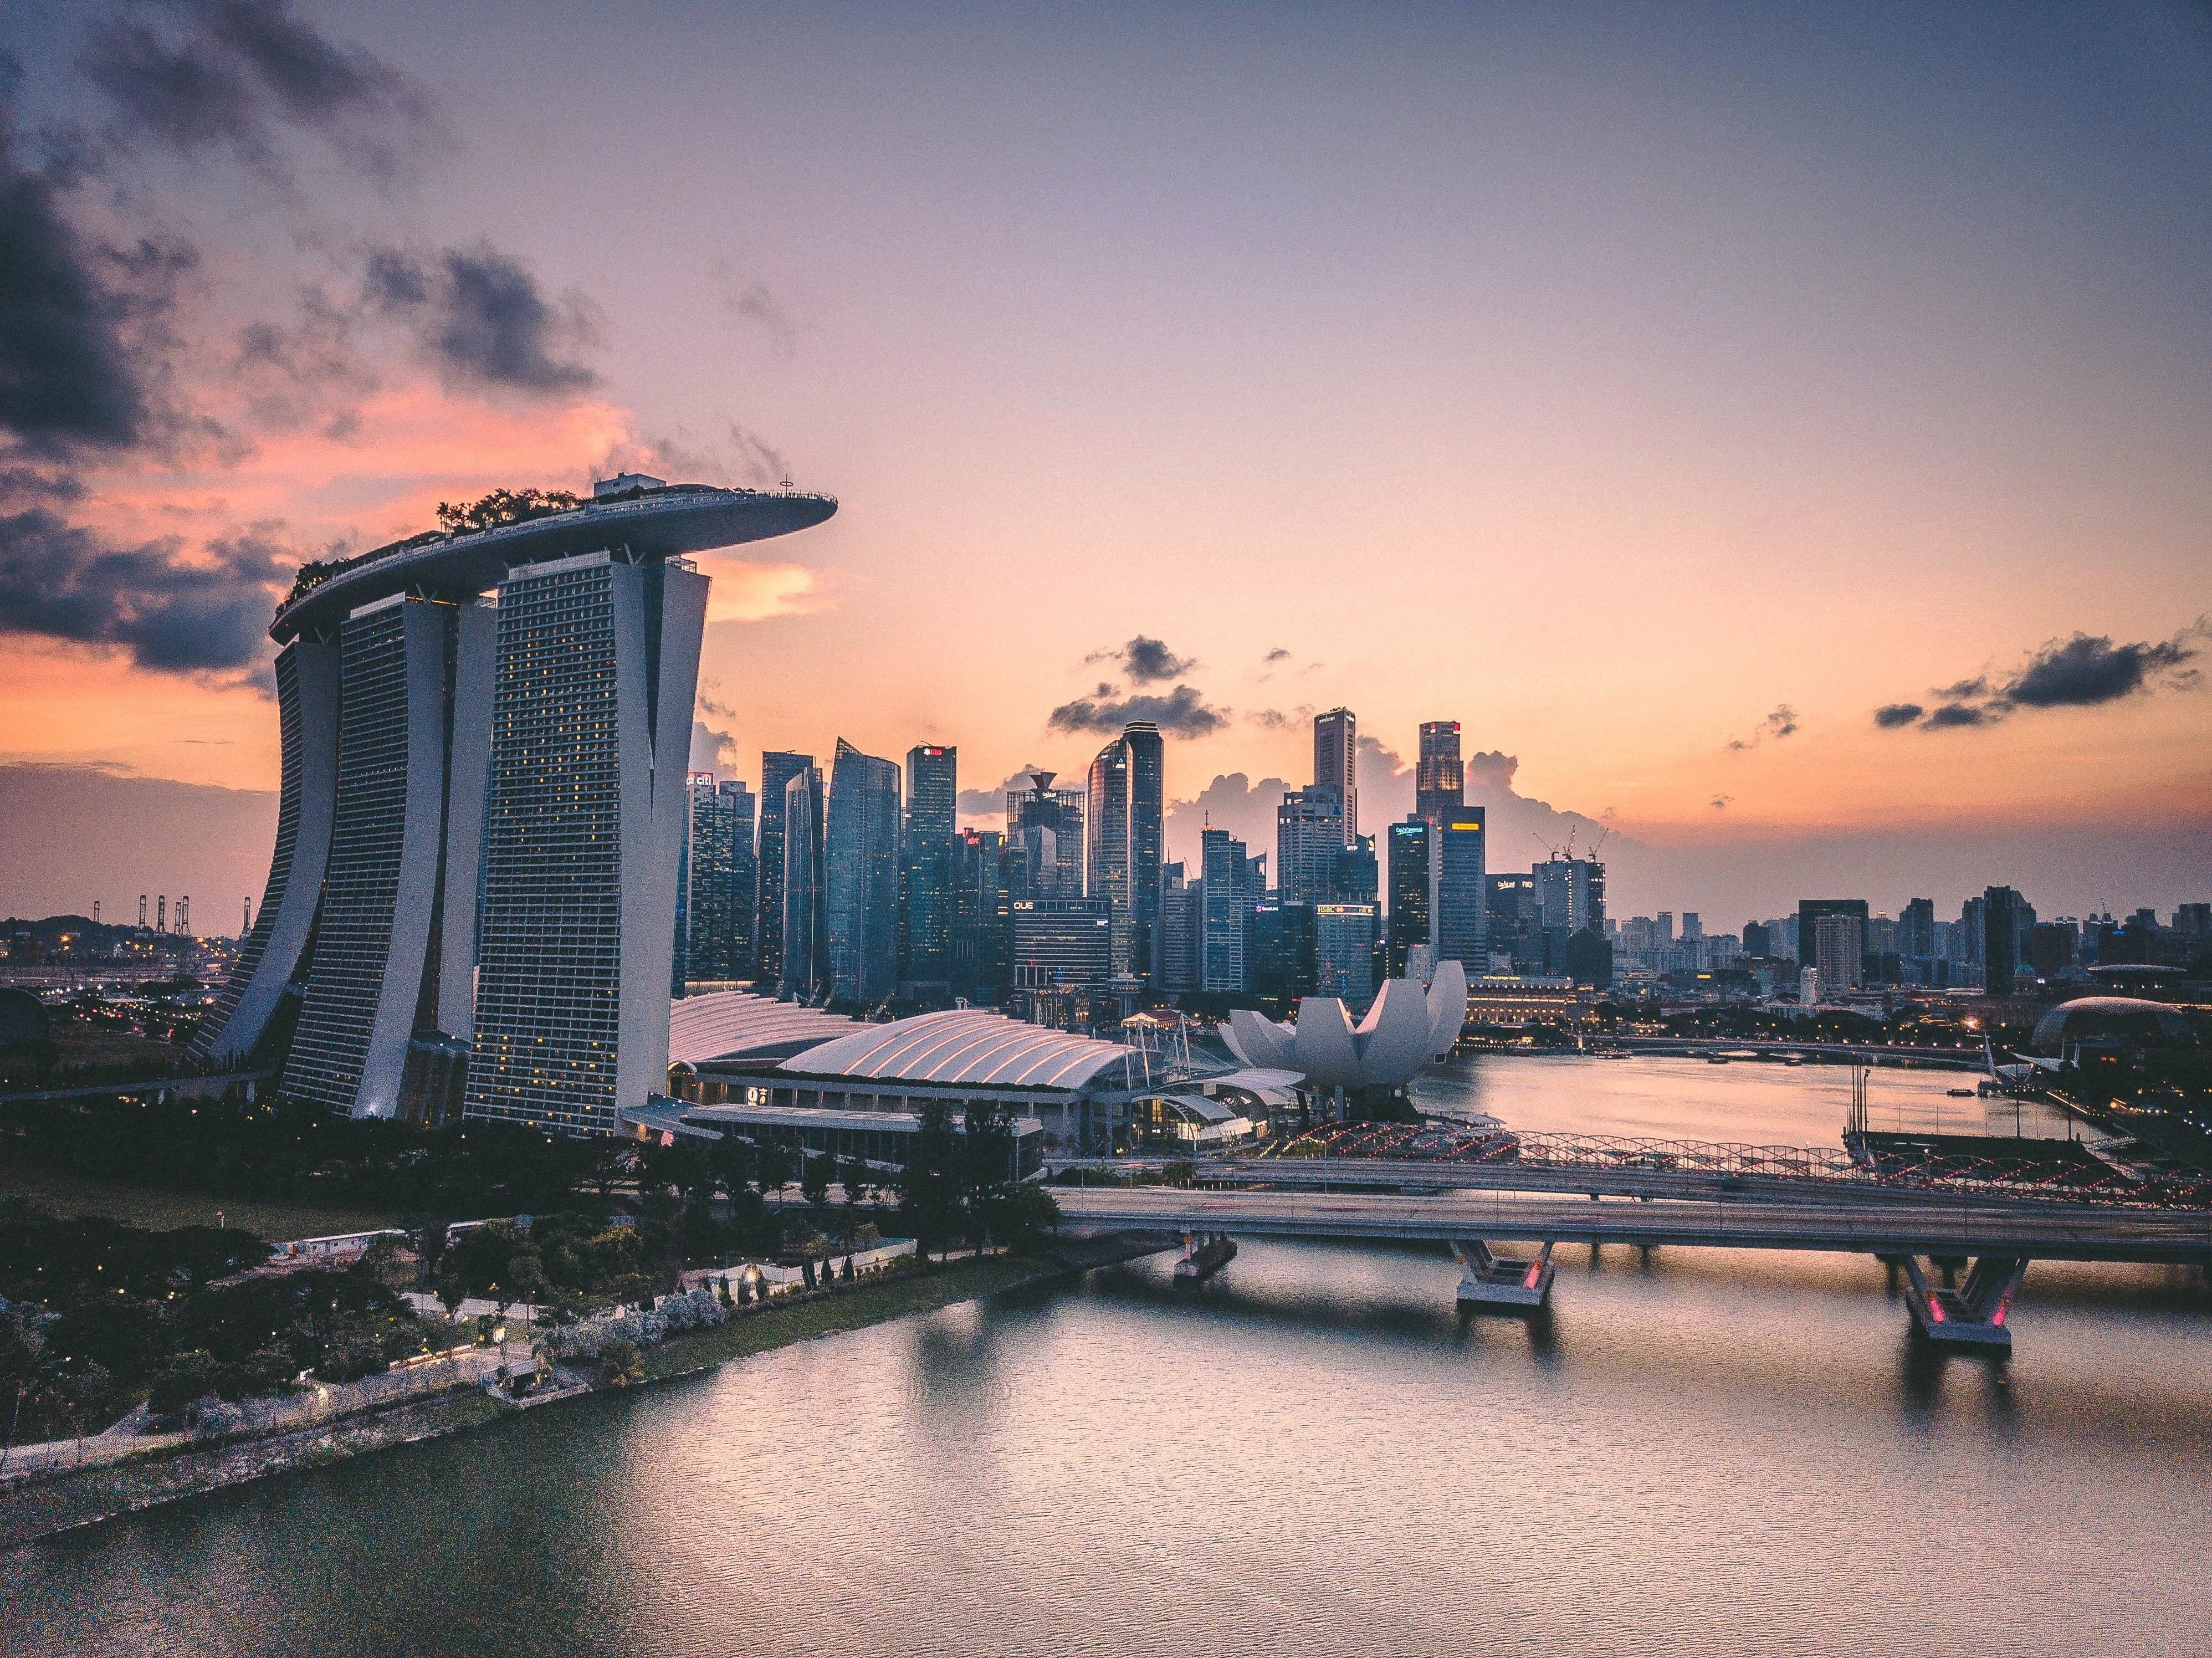 A picture of Singapore.